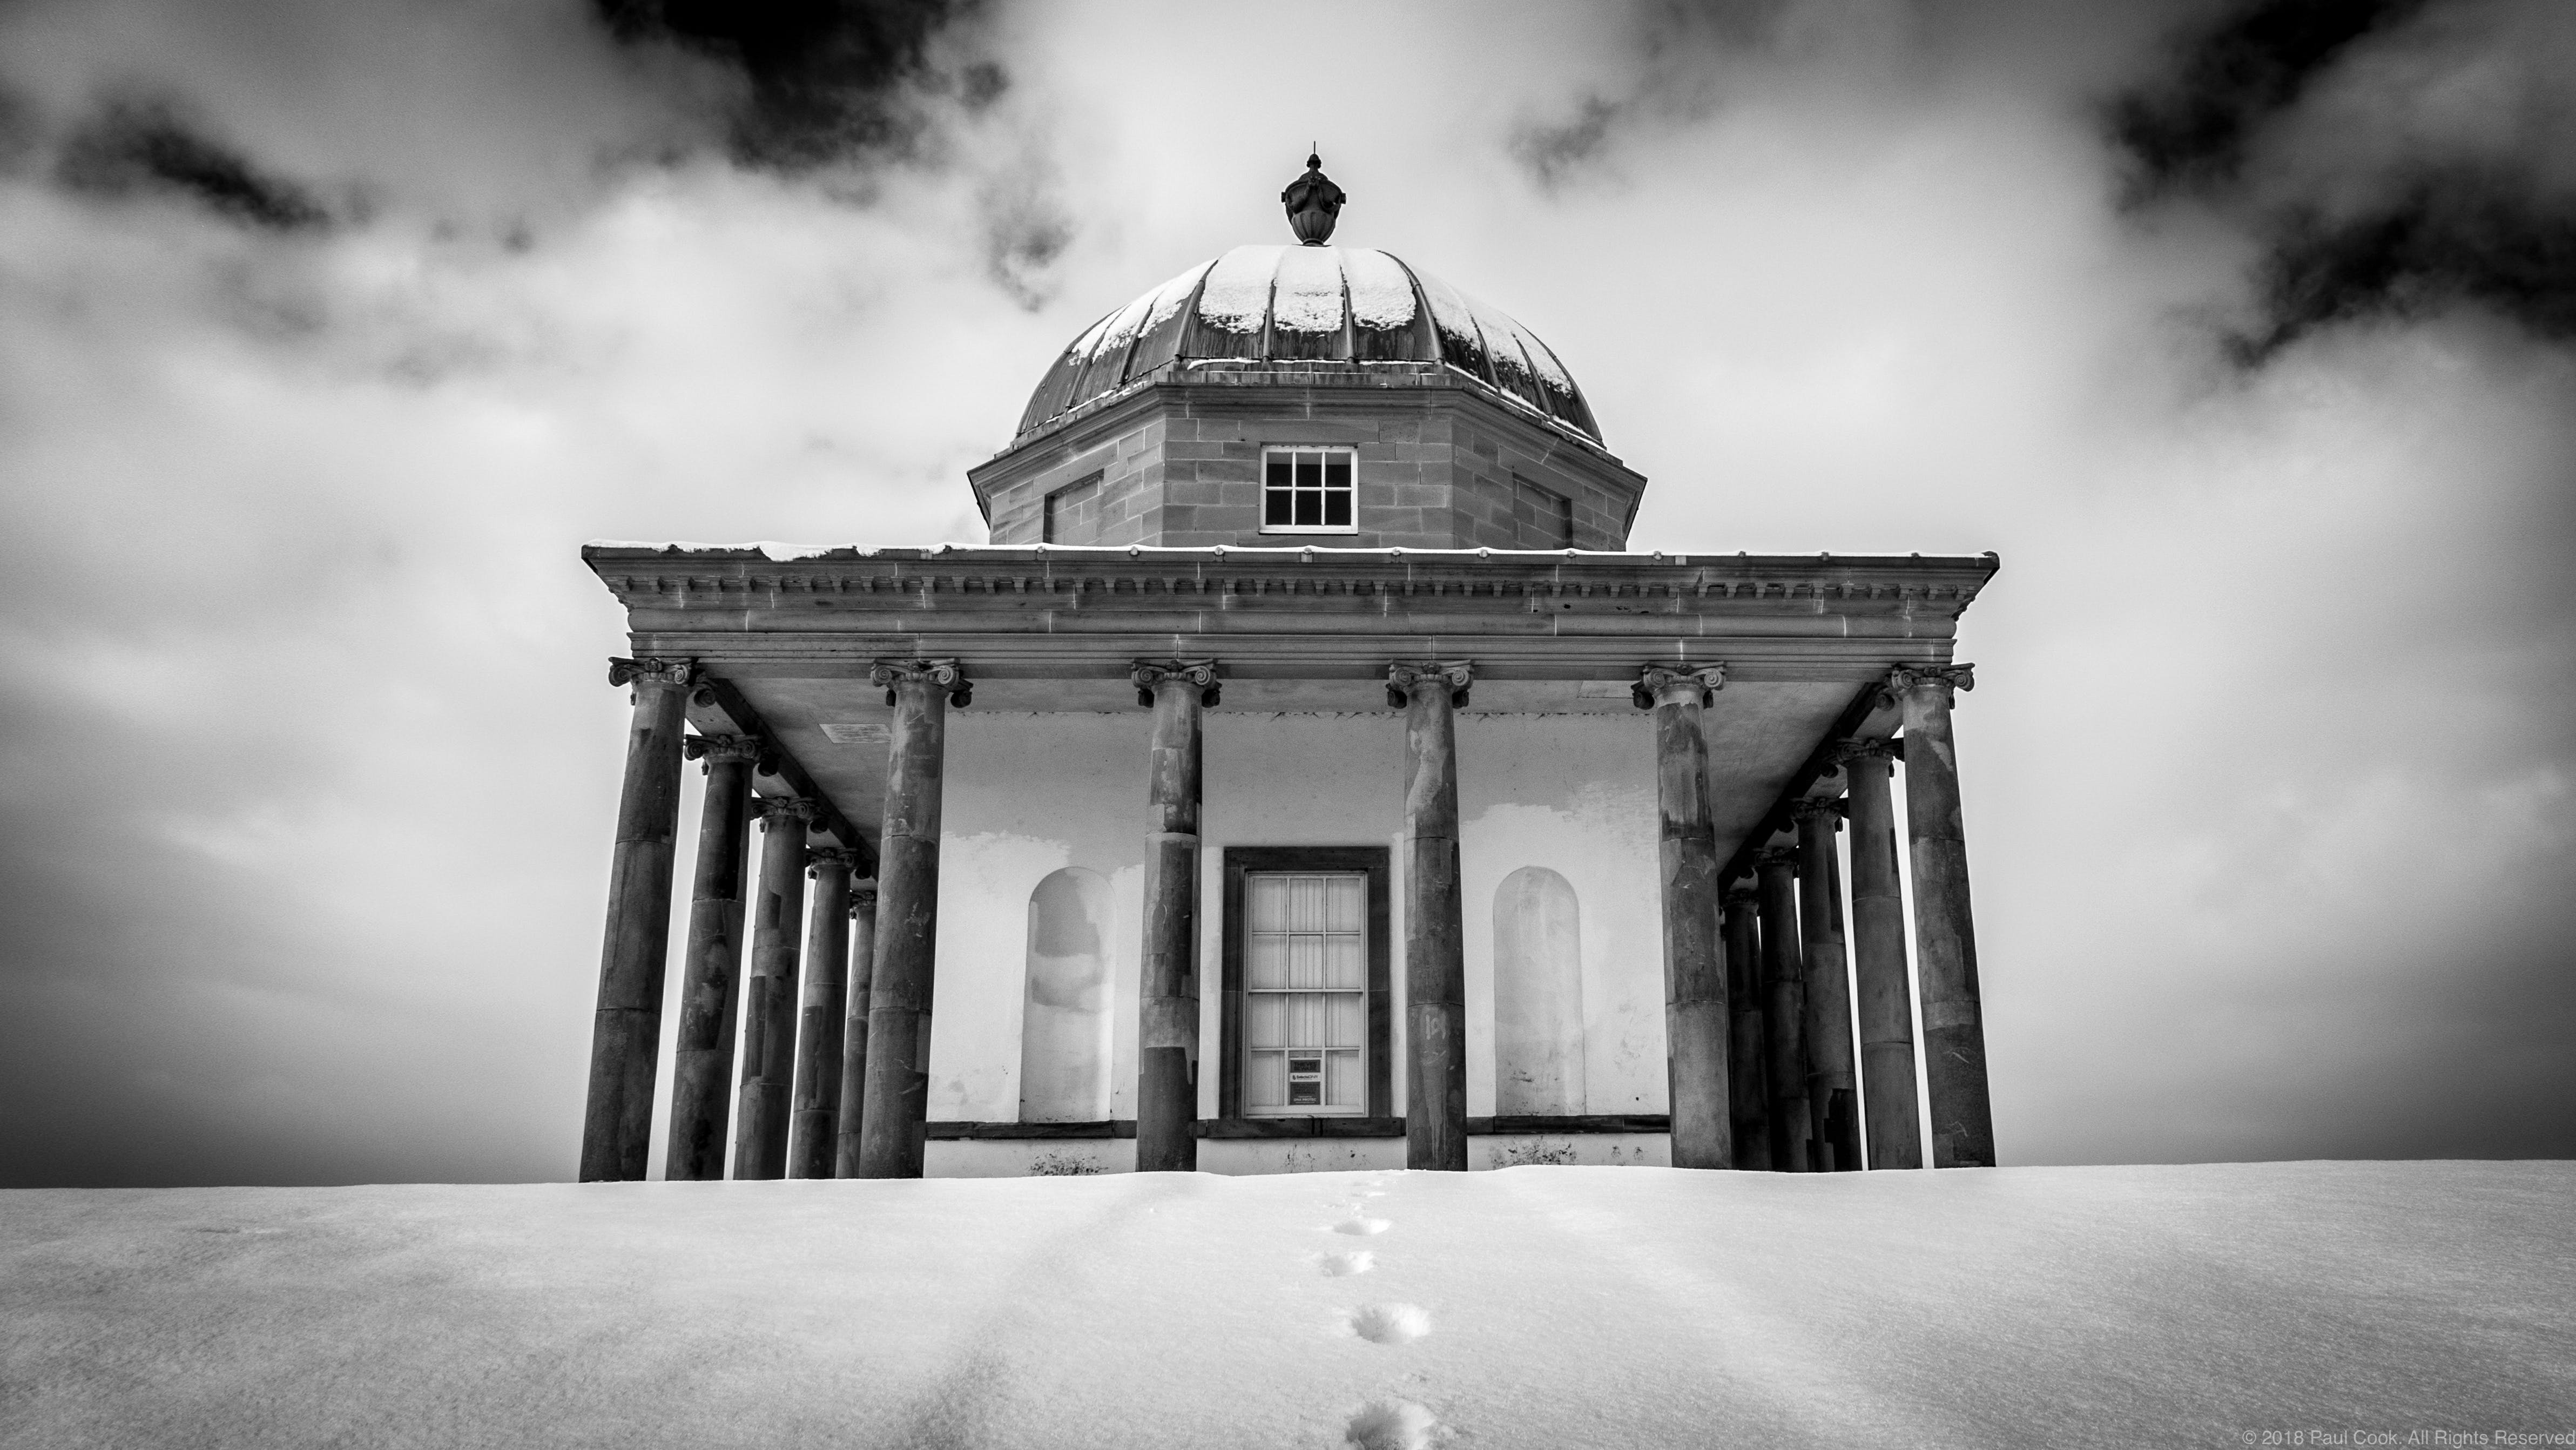 Free stock photo of folly, footprints in the snow, monochrome, snow